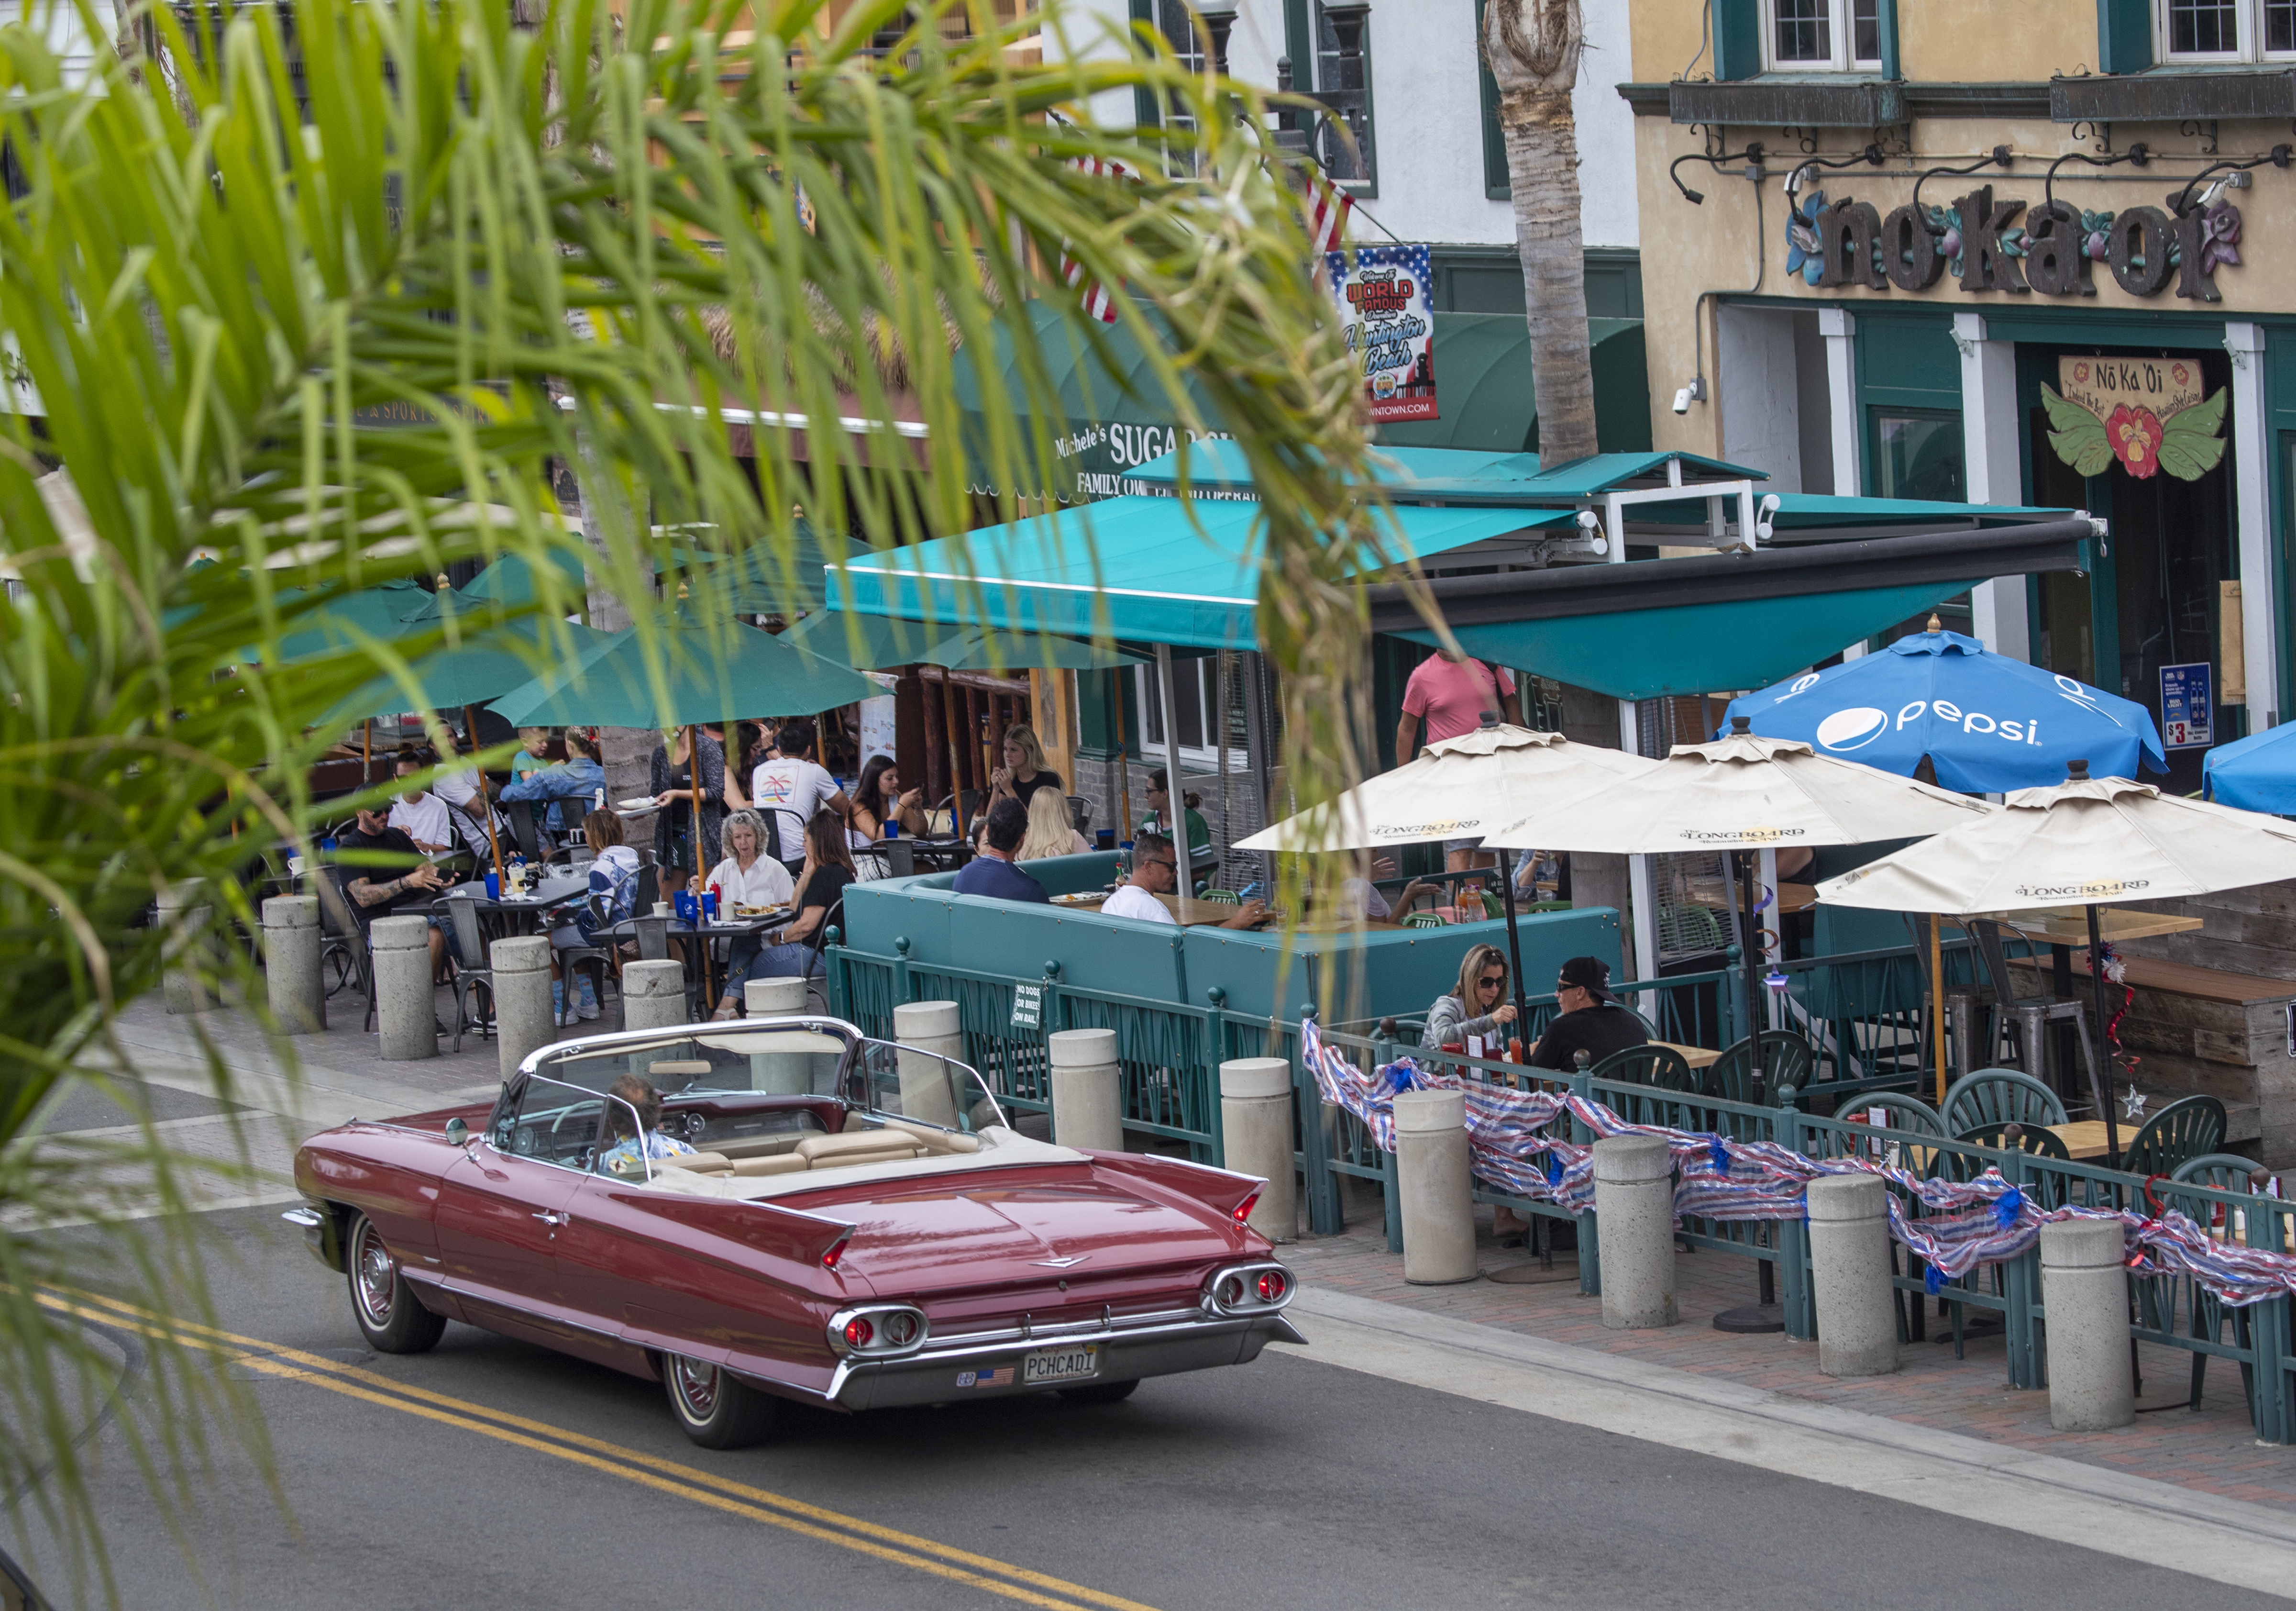 Bars across Orange County, many of which have only recently reopened, will be forced to shut down again beginning at midnight Thursday, Gov. Newsom announced.